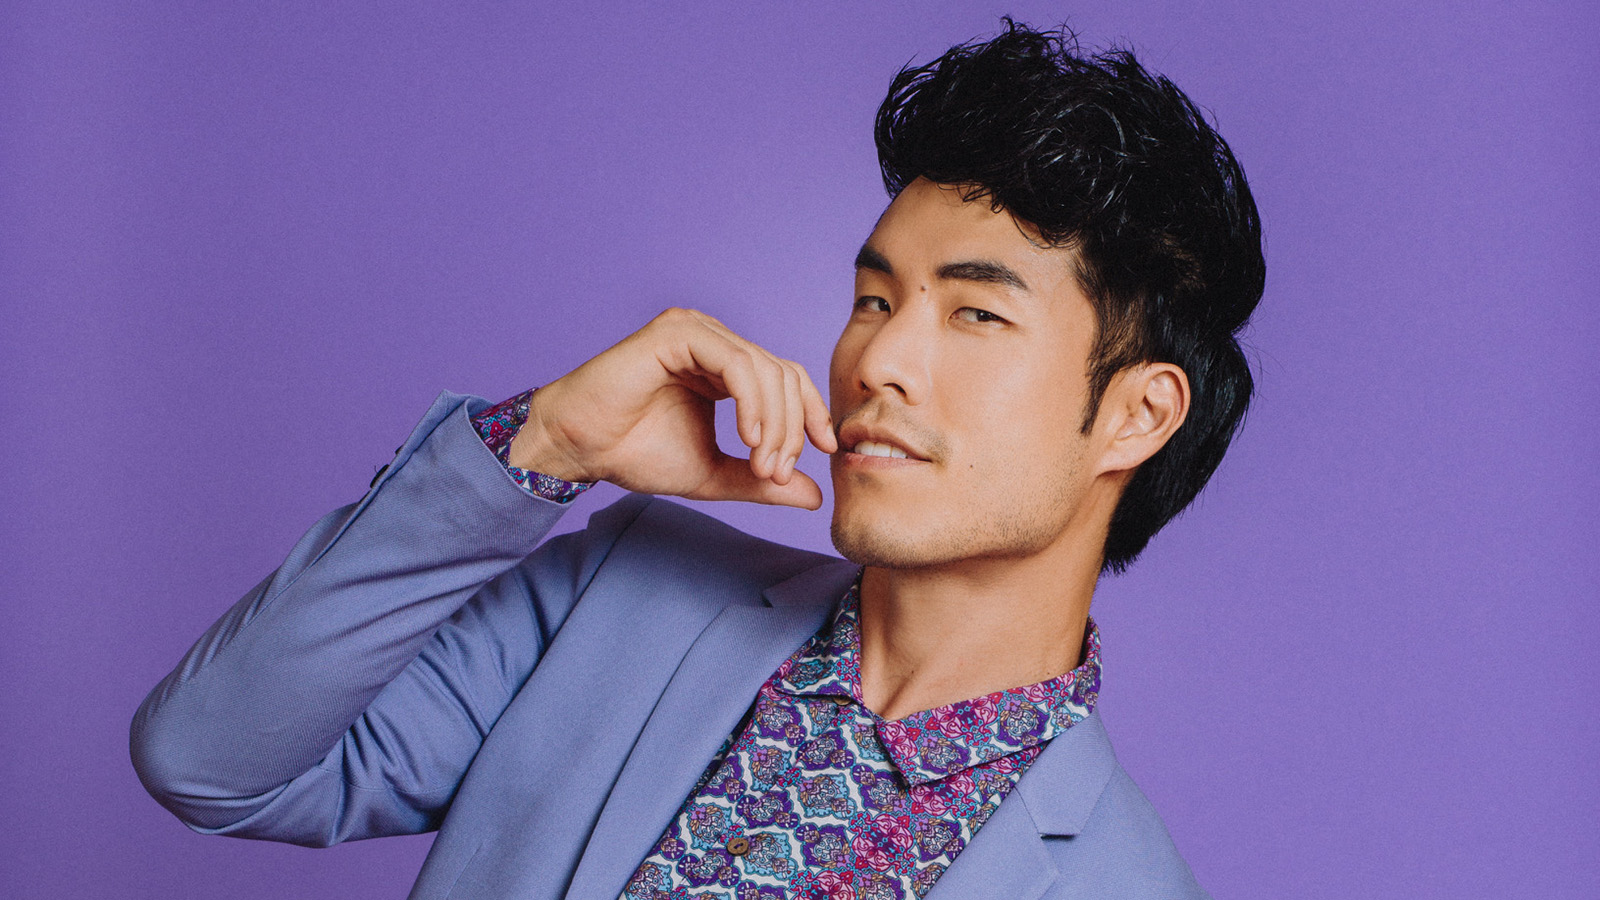 Eugene Lee Yang Hosts #HRCTwitterTakeover on LGBTQ Representation to Mark National Coming Out Day